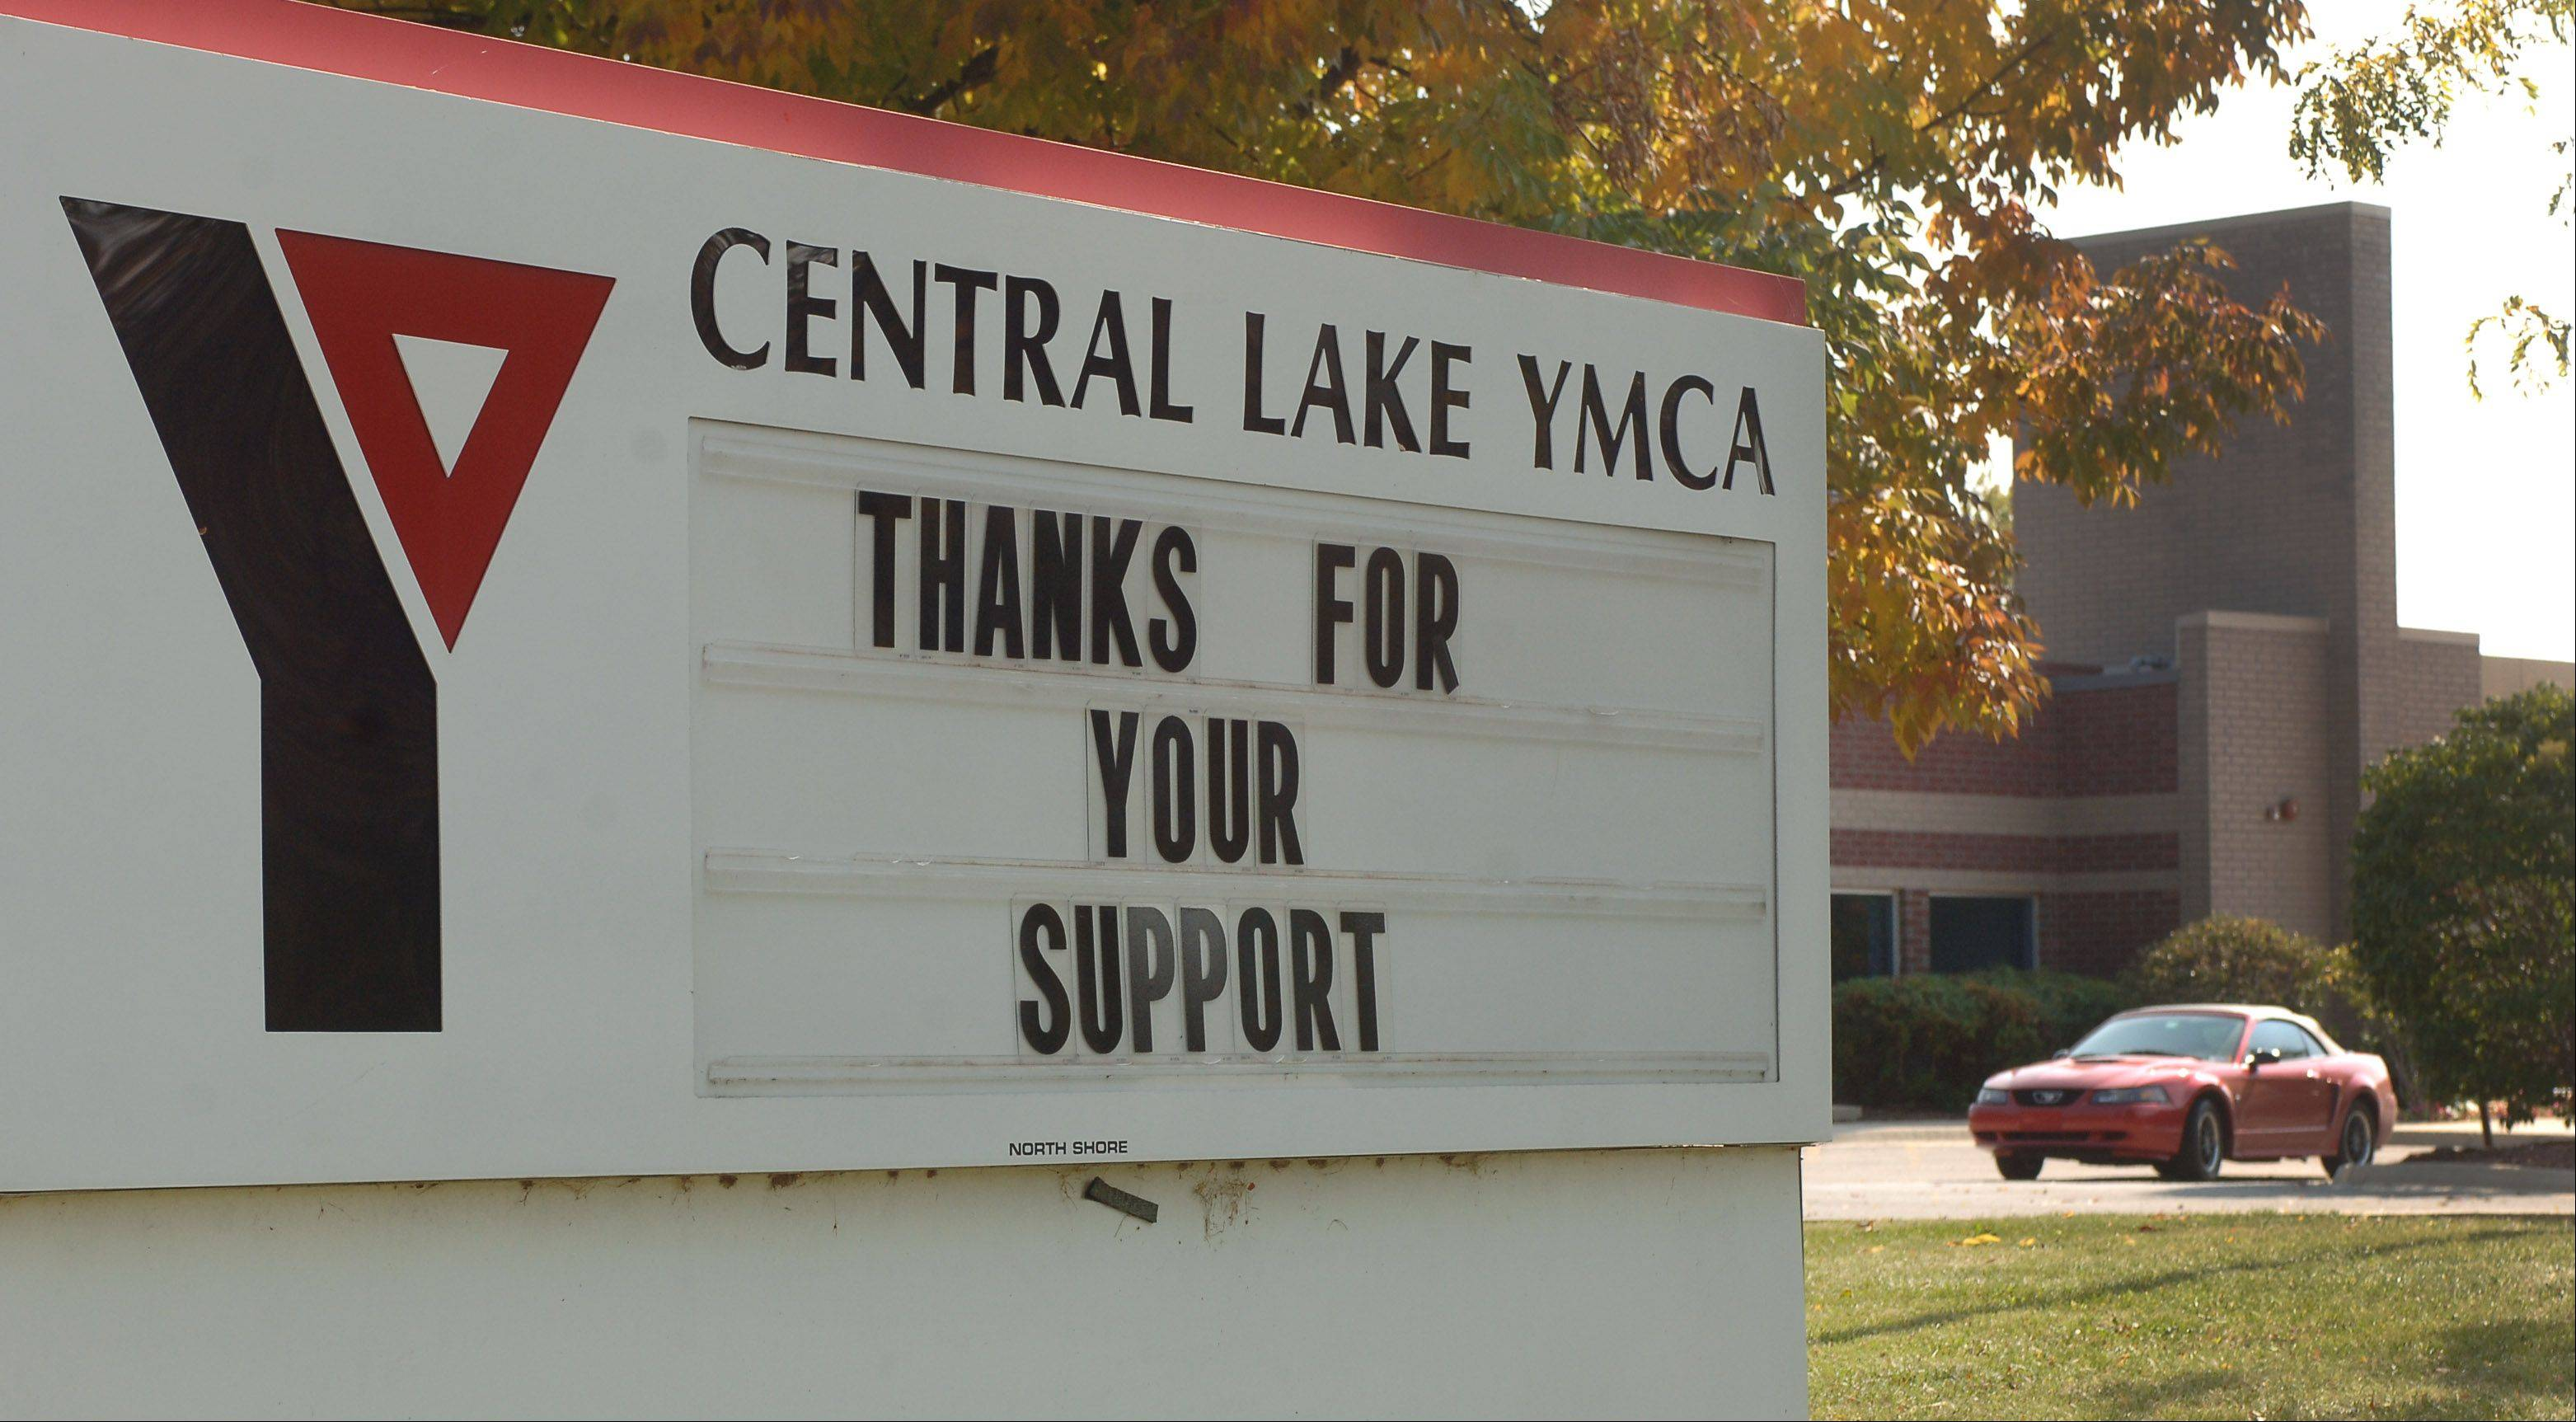 A thank you message was posted Friday after officials announced the closing of the Central Lake YMCA in Vernon Hills at the end of October.